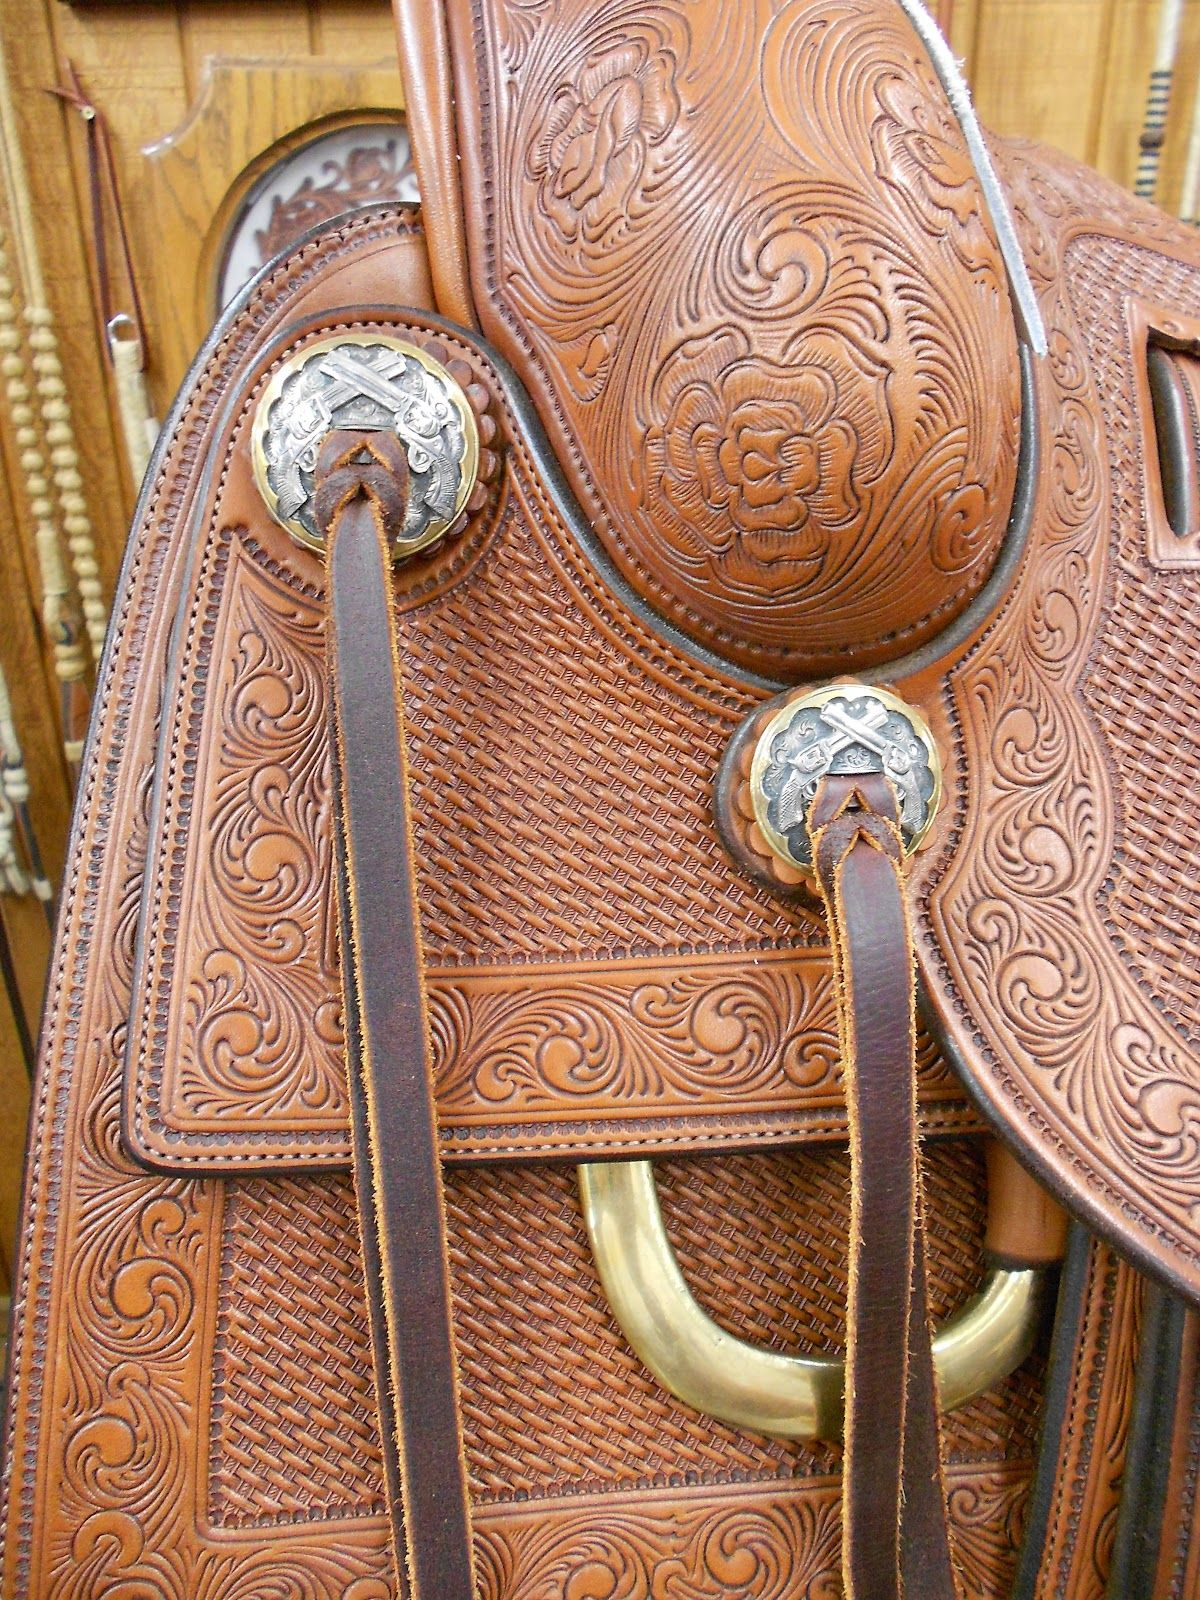 Guns & Roses Saddle on display. Amazing detail in both leather & silver ...  rodeotalesgypsytrails.blogspot.com